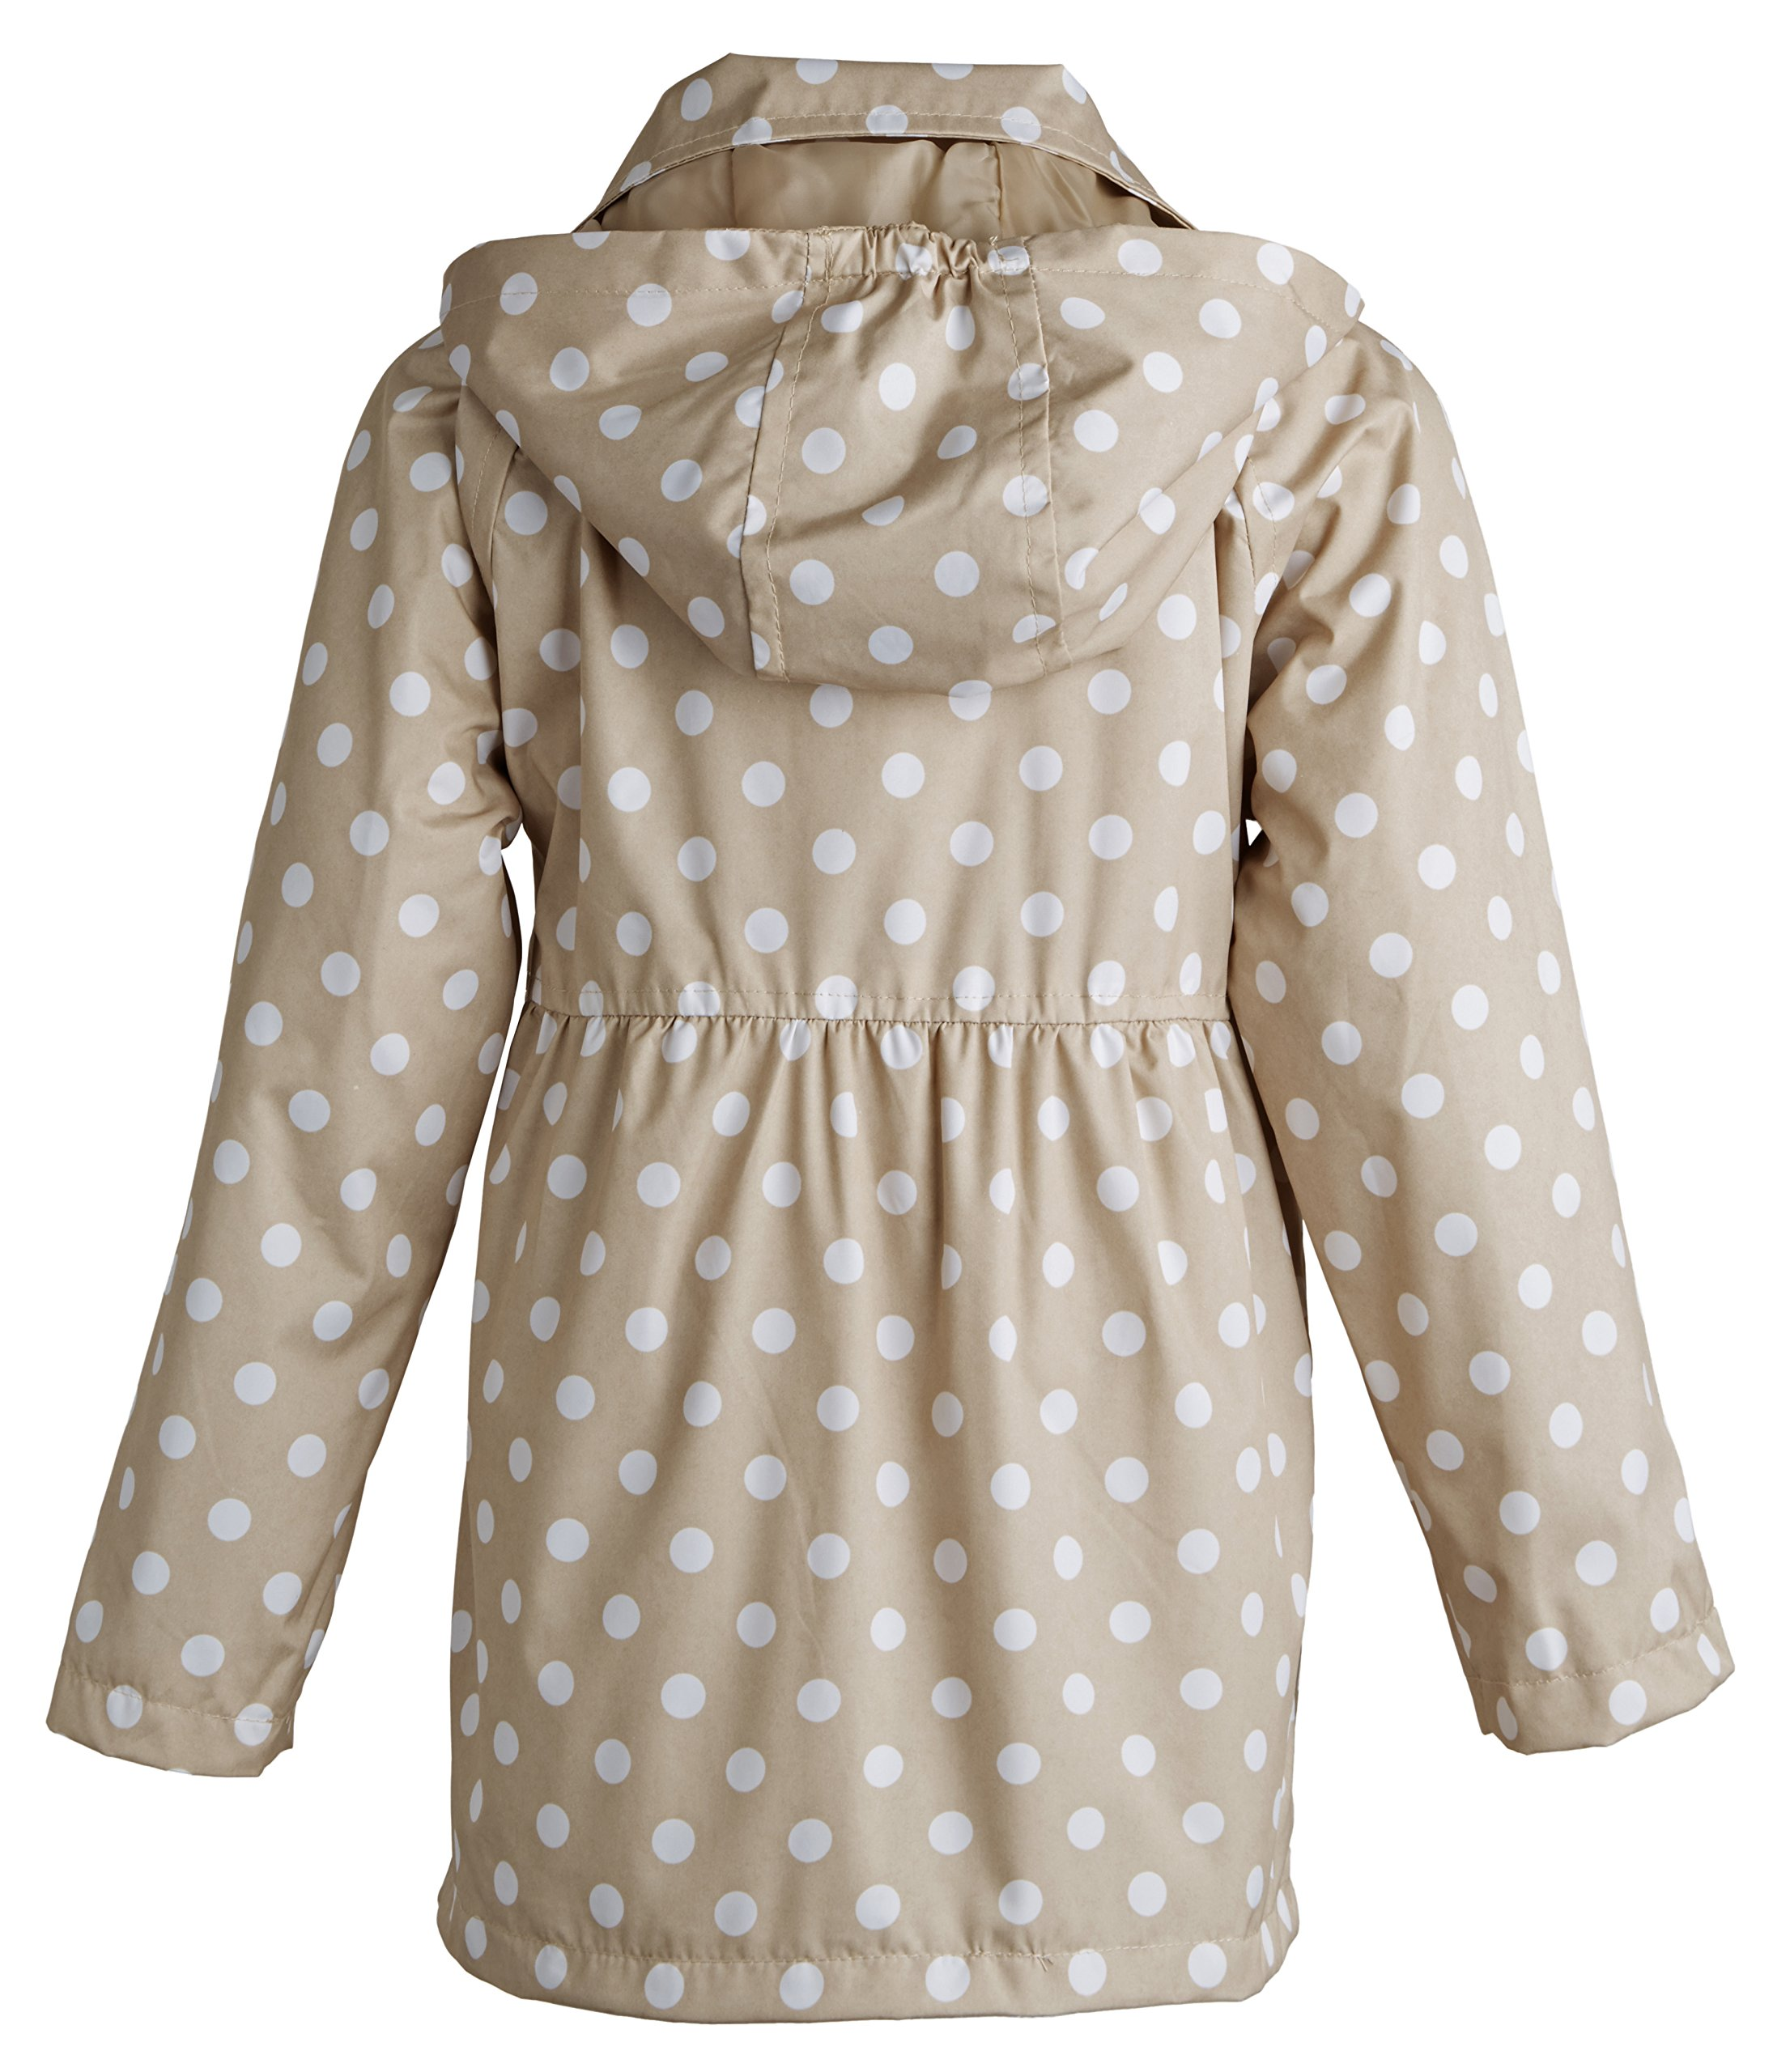 Pink Platinum Little Girls Double Breasted Polka Dot Waisted Spring Trench Coat - Khaki (Size 4) by Pink Platinum (Image #3)